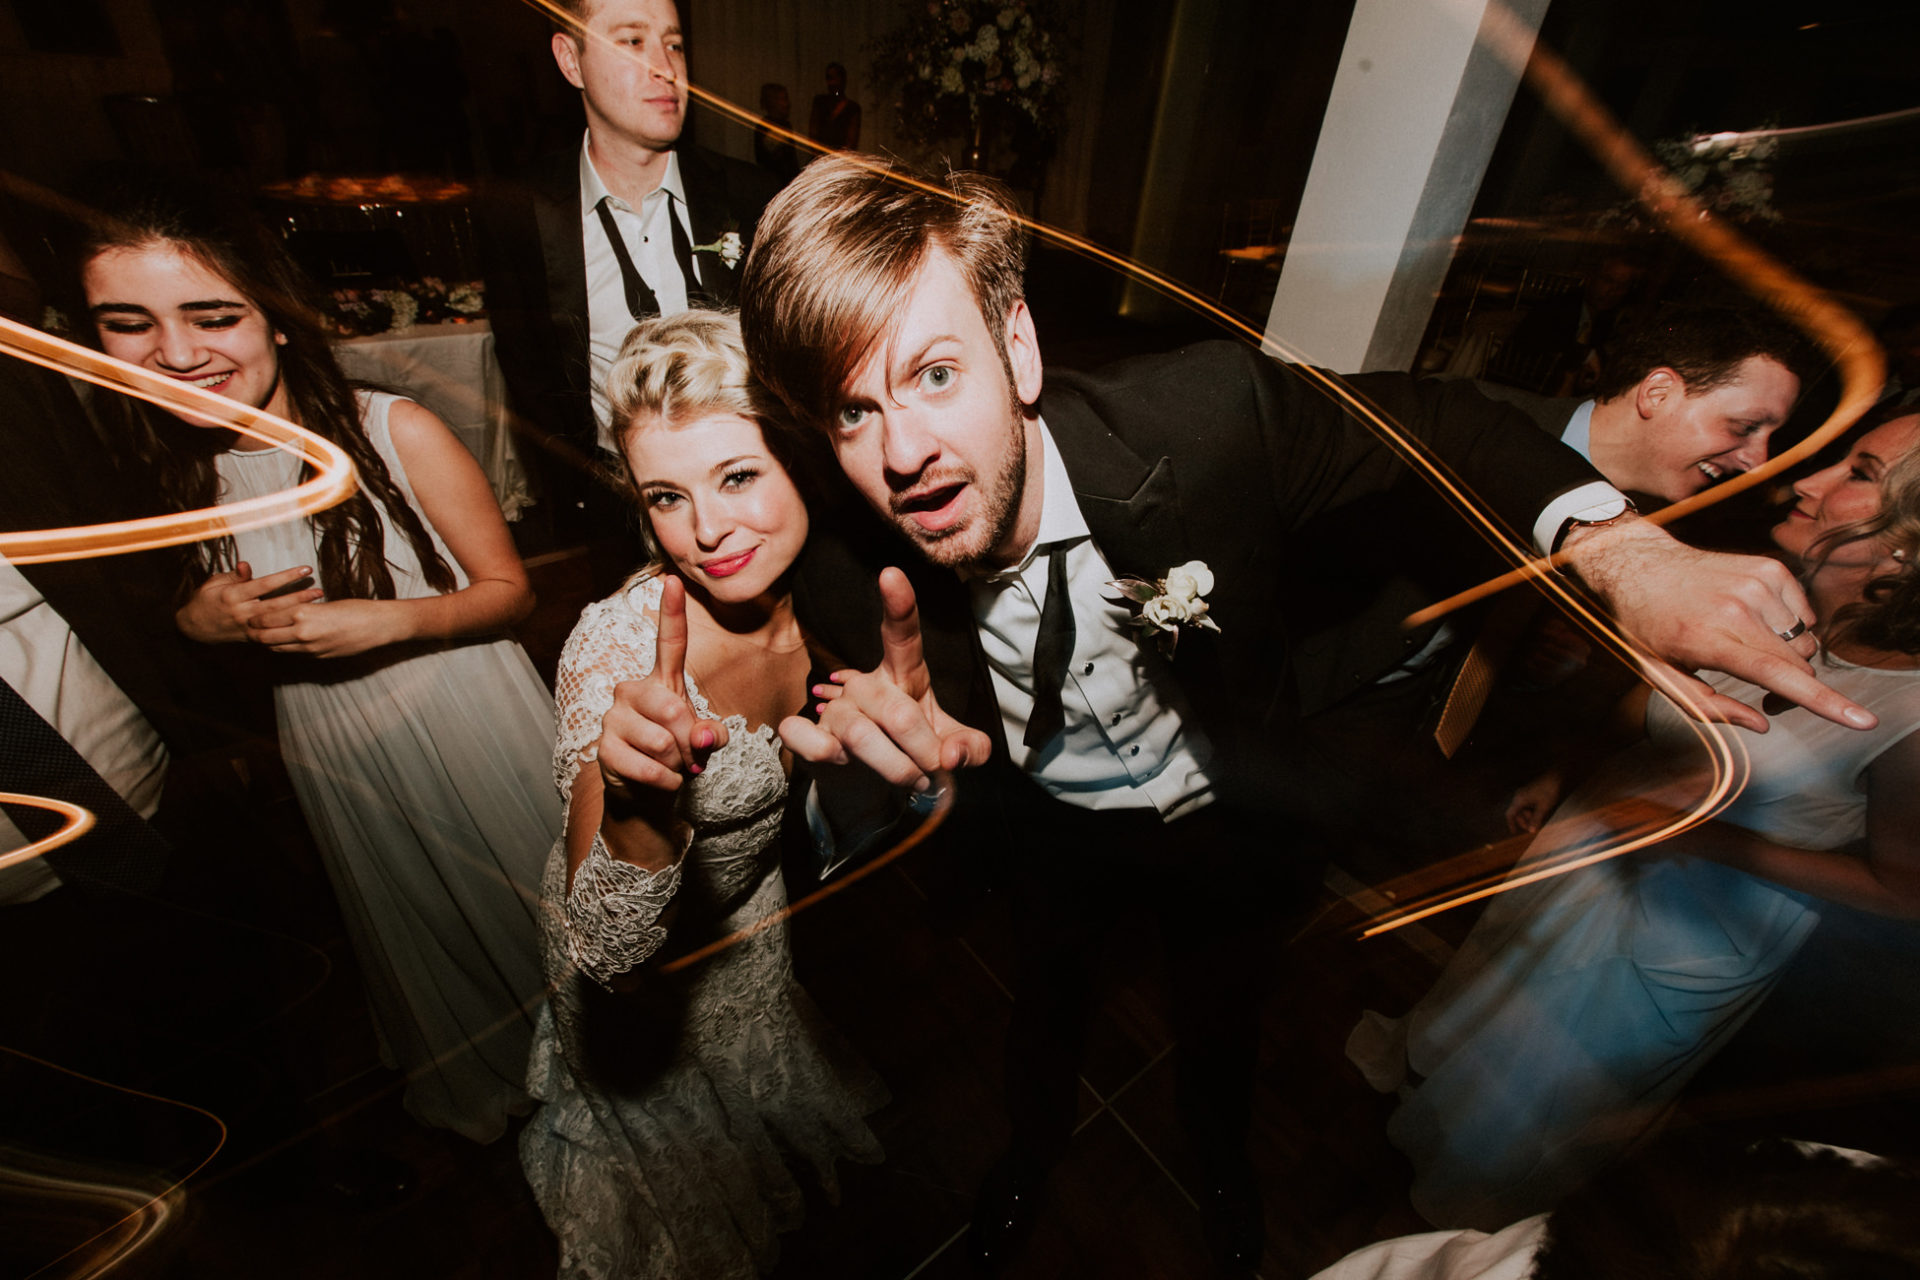 best-top-los-angeles-destination-wedding-photographer-hipster-modern-quirky-editorial-romantic-epic-51-dance-fun-reception